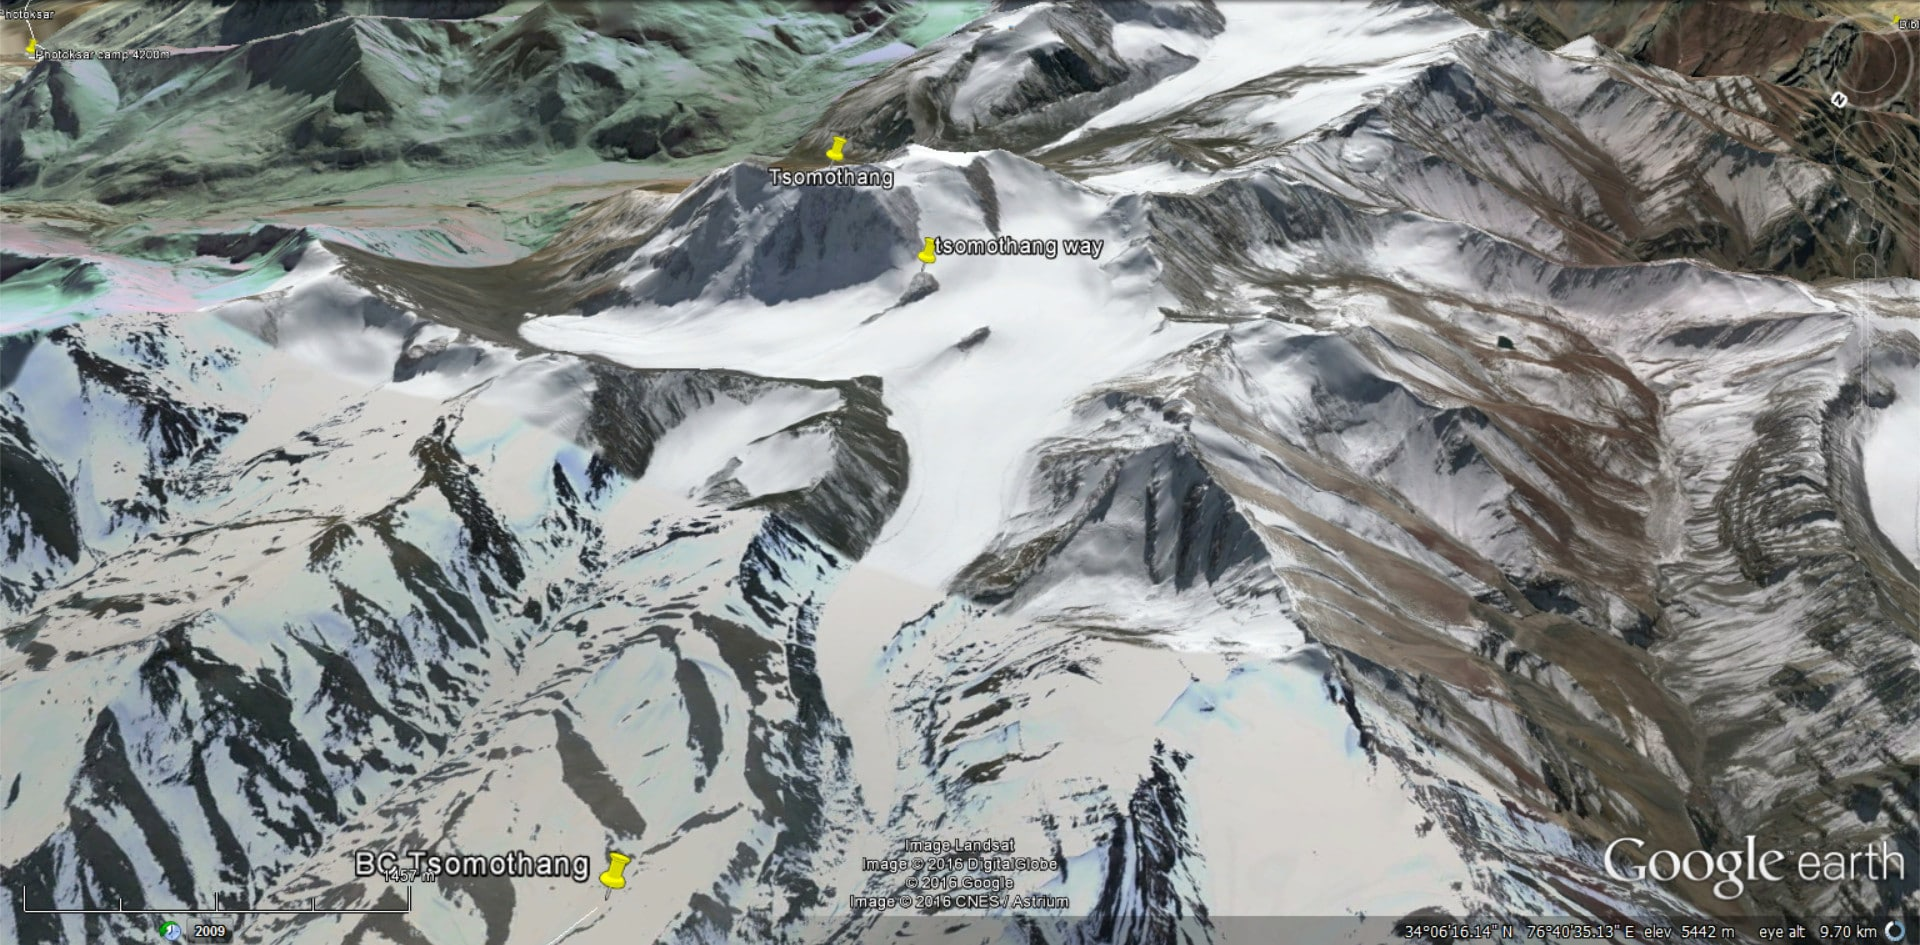 Tsomothang auf Google Earth